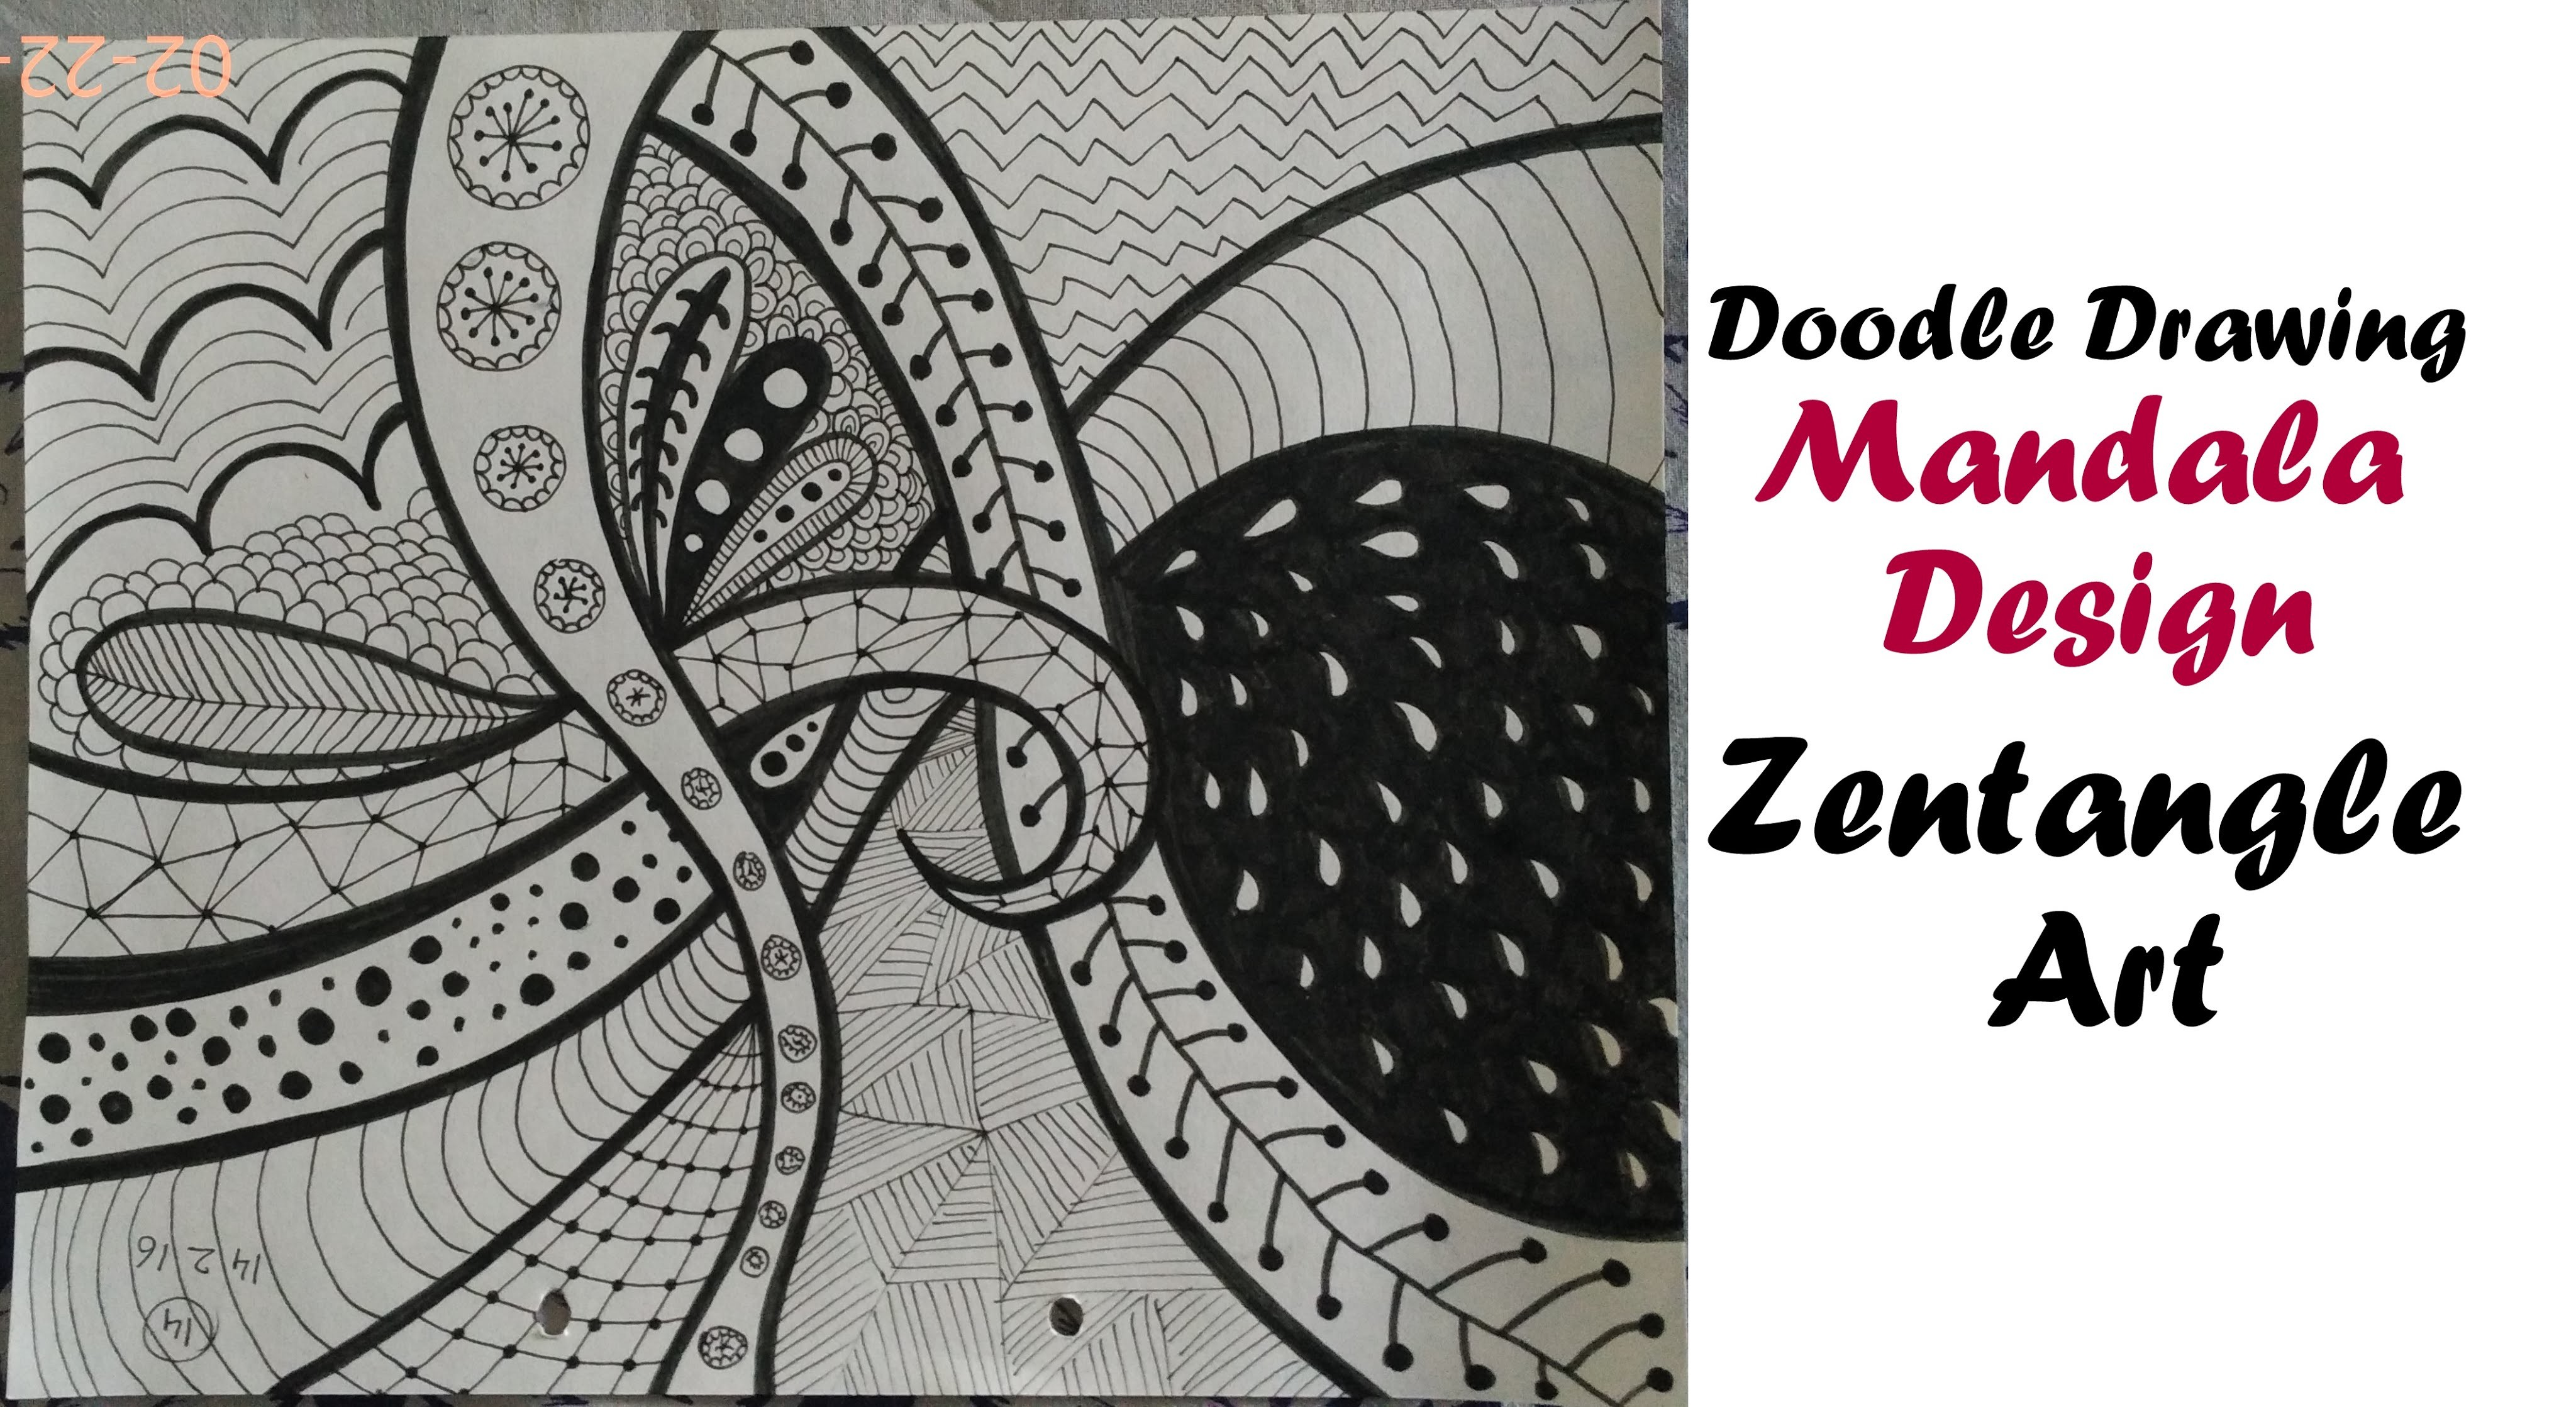 Mandala Art Tutorial for Beginners, How To Draw Zentangle Design, Easy Doodle Drawing step by step